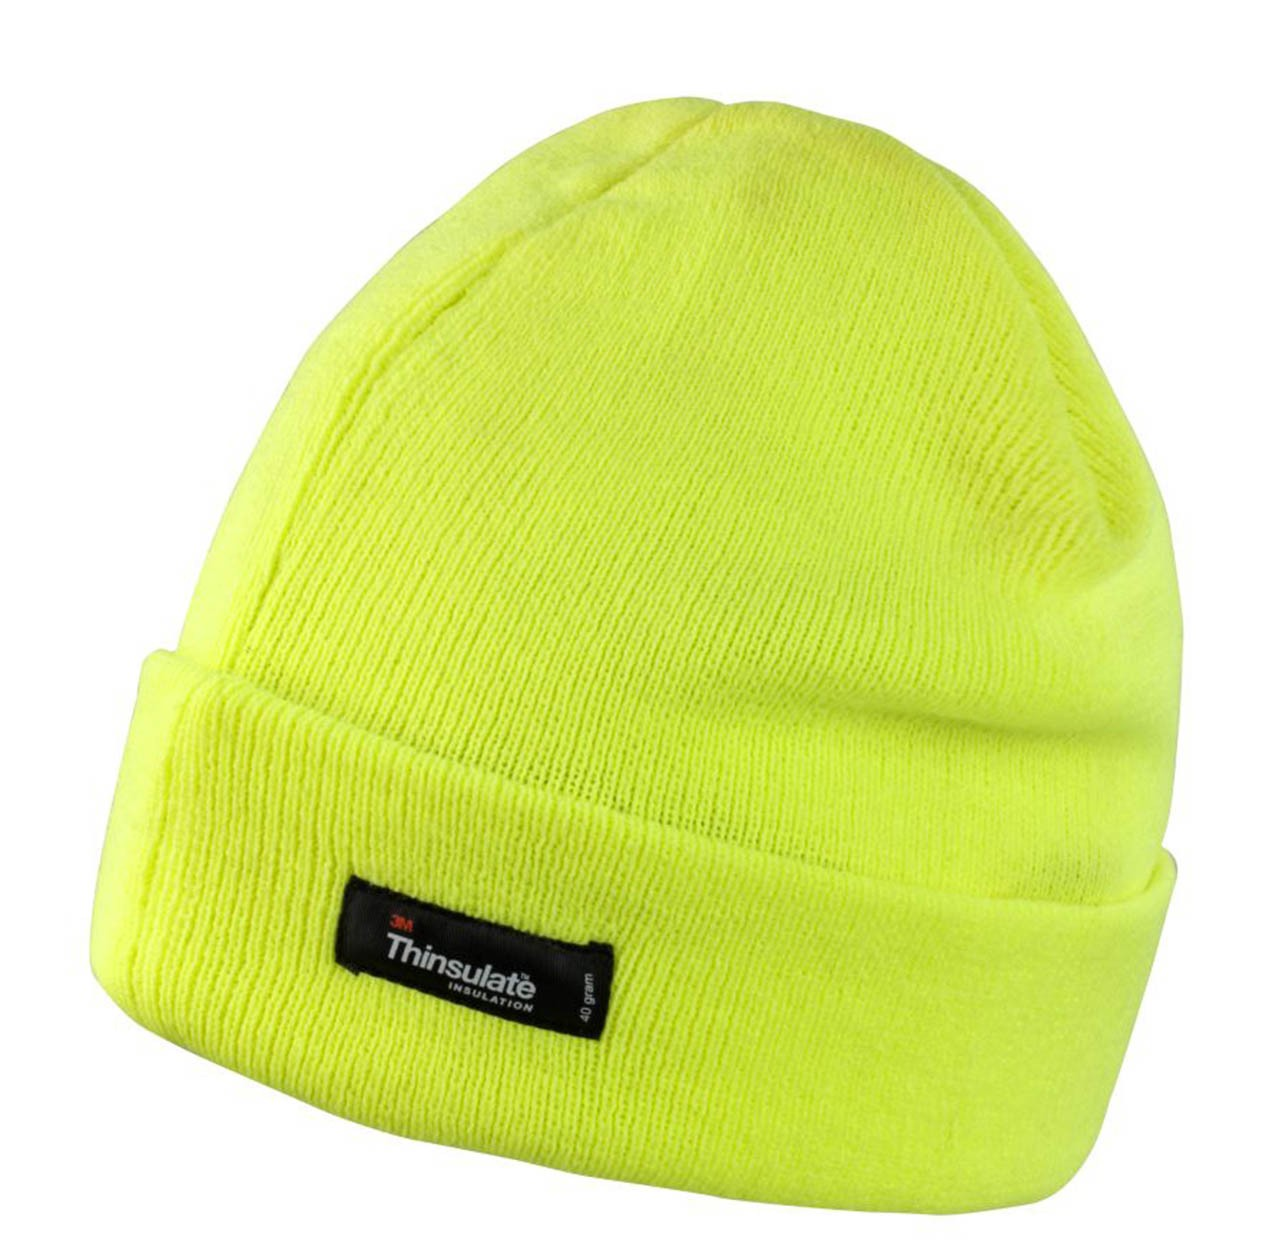 1f305db54fb Result RC133 Lightweight Thinsulate Hat Result RC133 Lightweight Thinsulate  Hat Black Fluo Orange Fluo Yellow ...